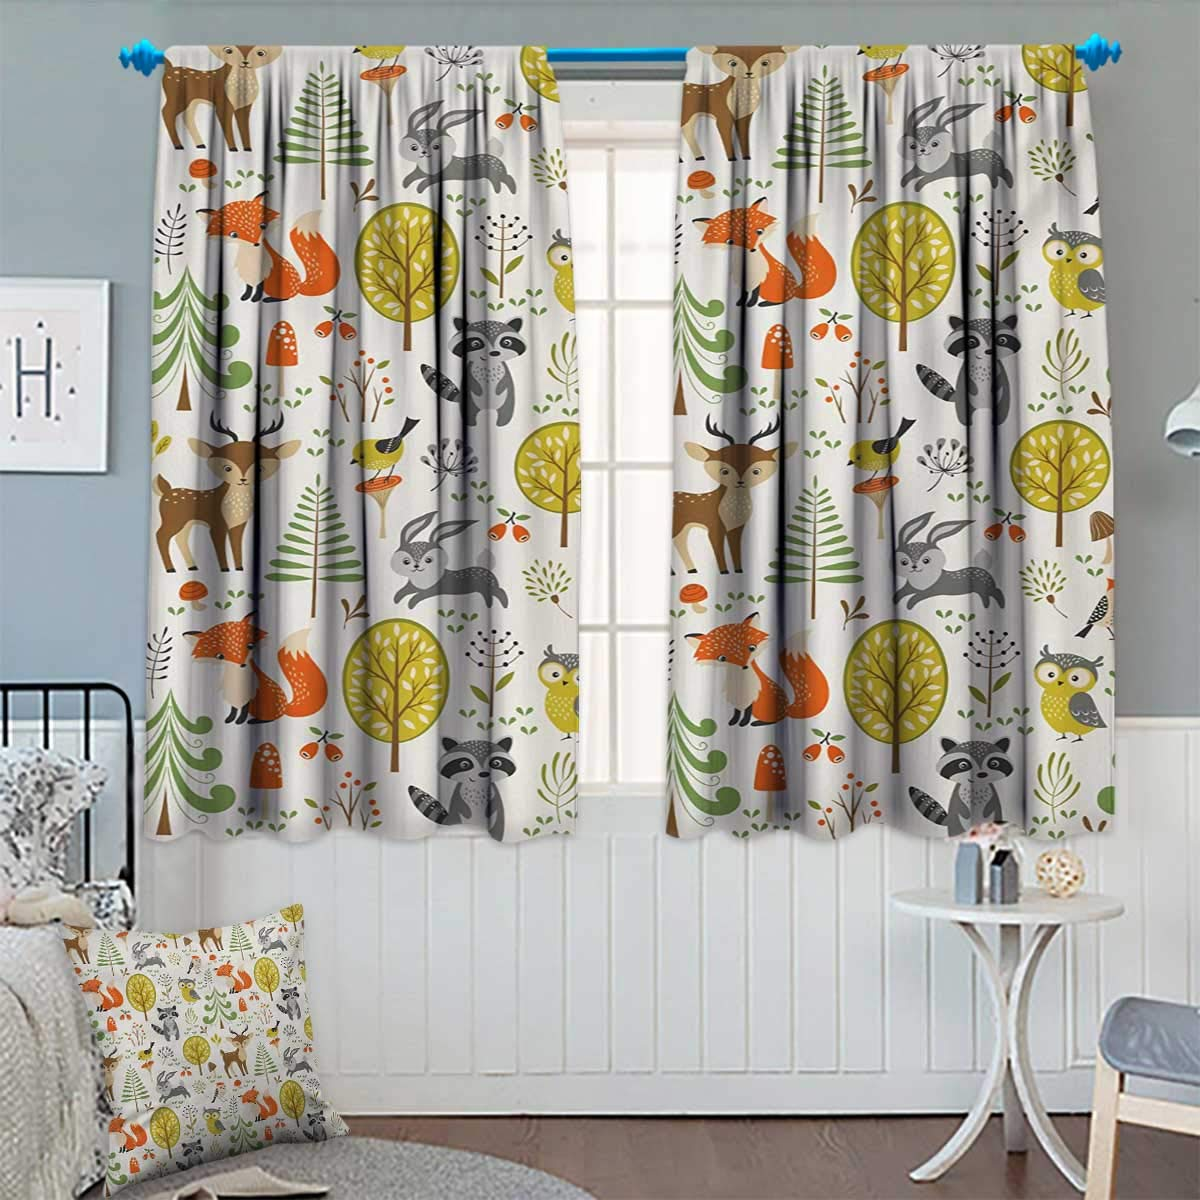 Chaneyhouse Animals Room Darkening Curtains Woodland Forest Animals Trees Birds Owls Fox Bunny Deer Raccoon Mushroom Print Decor Curtains by 55'' W x 45'' L Multicolor